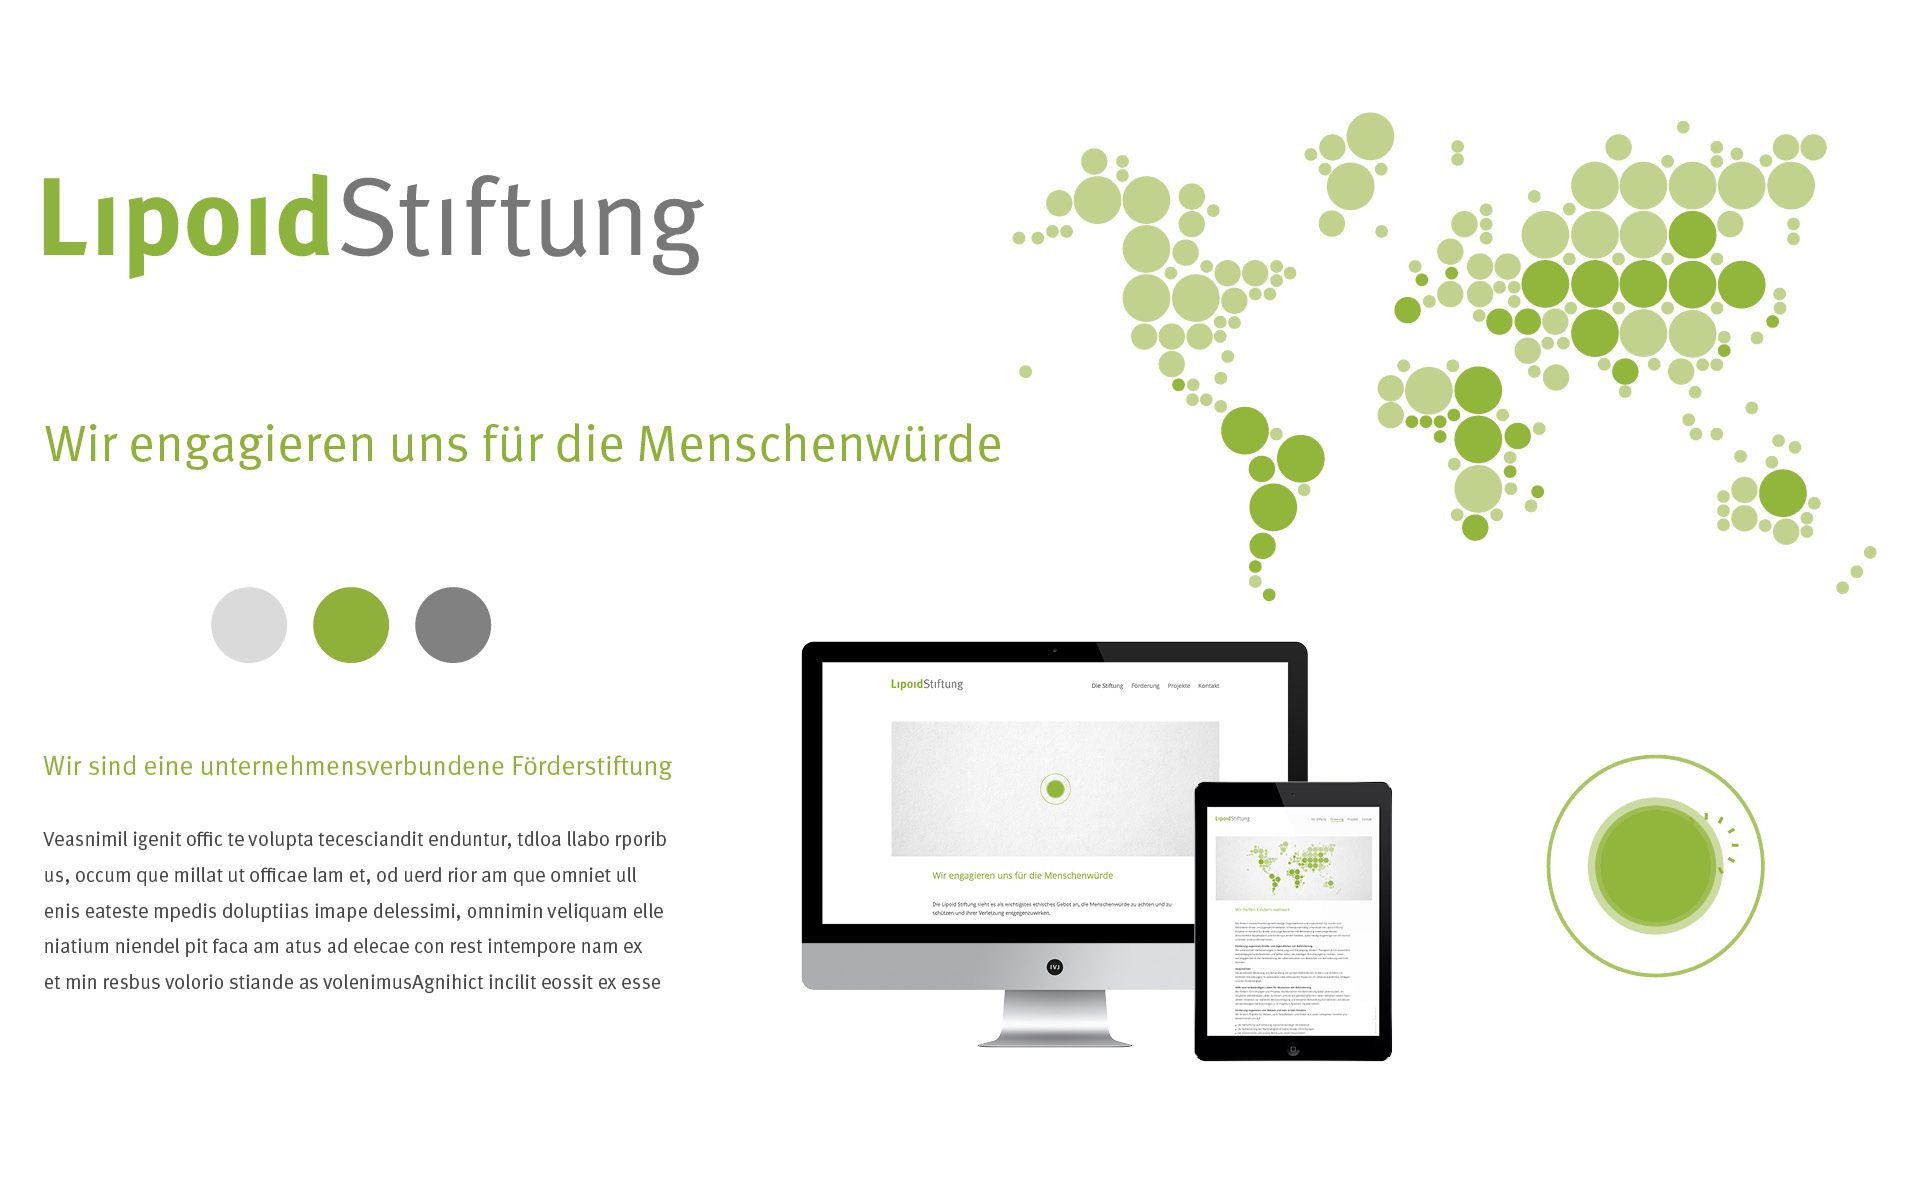 lipoid-stiftung